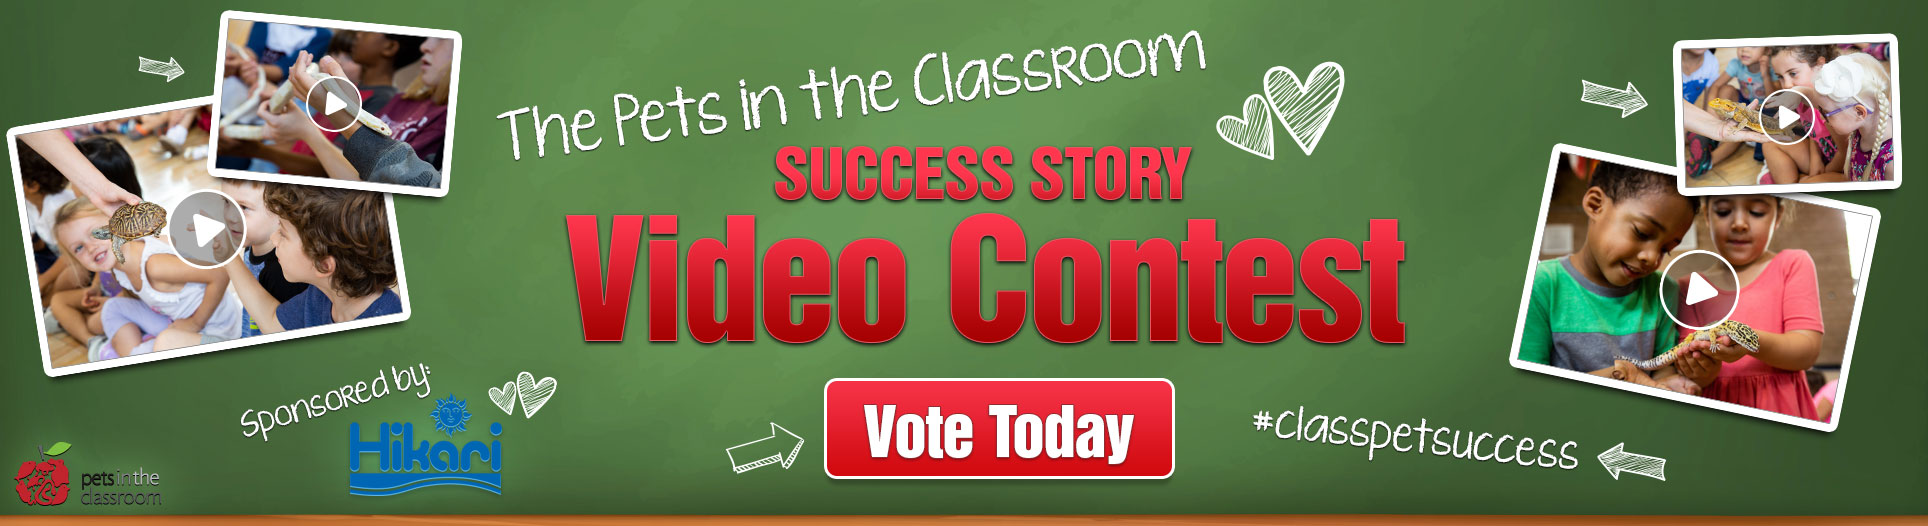 Pets in the Classroom Video Contest